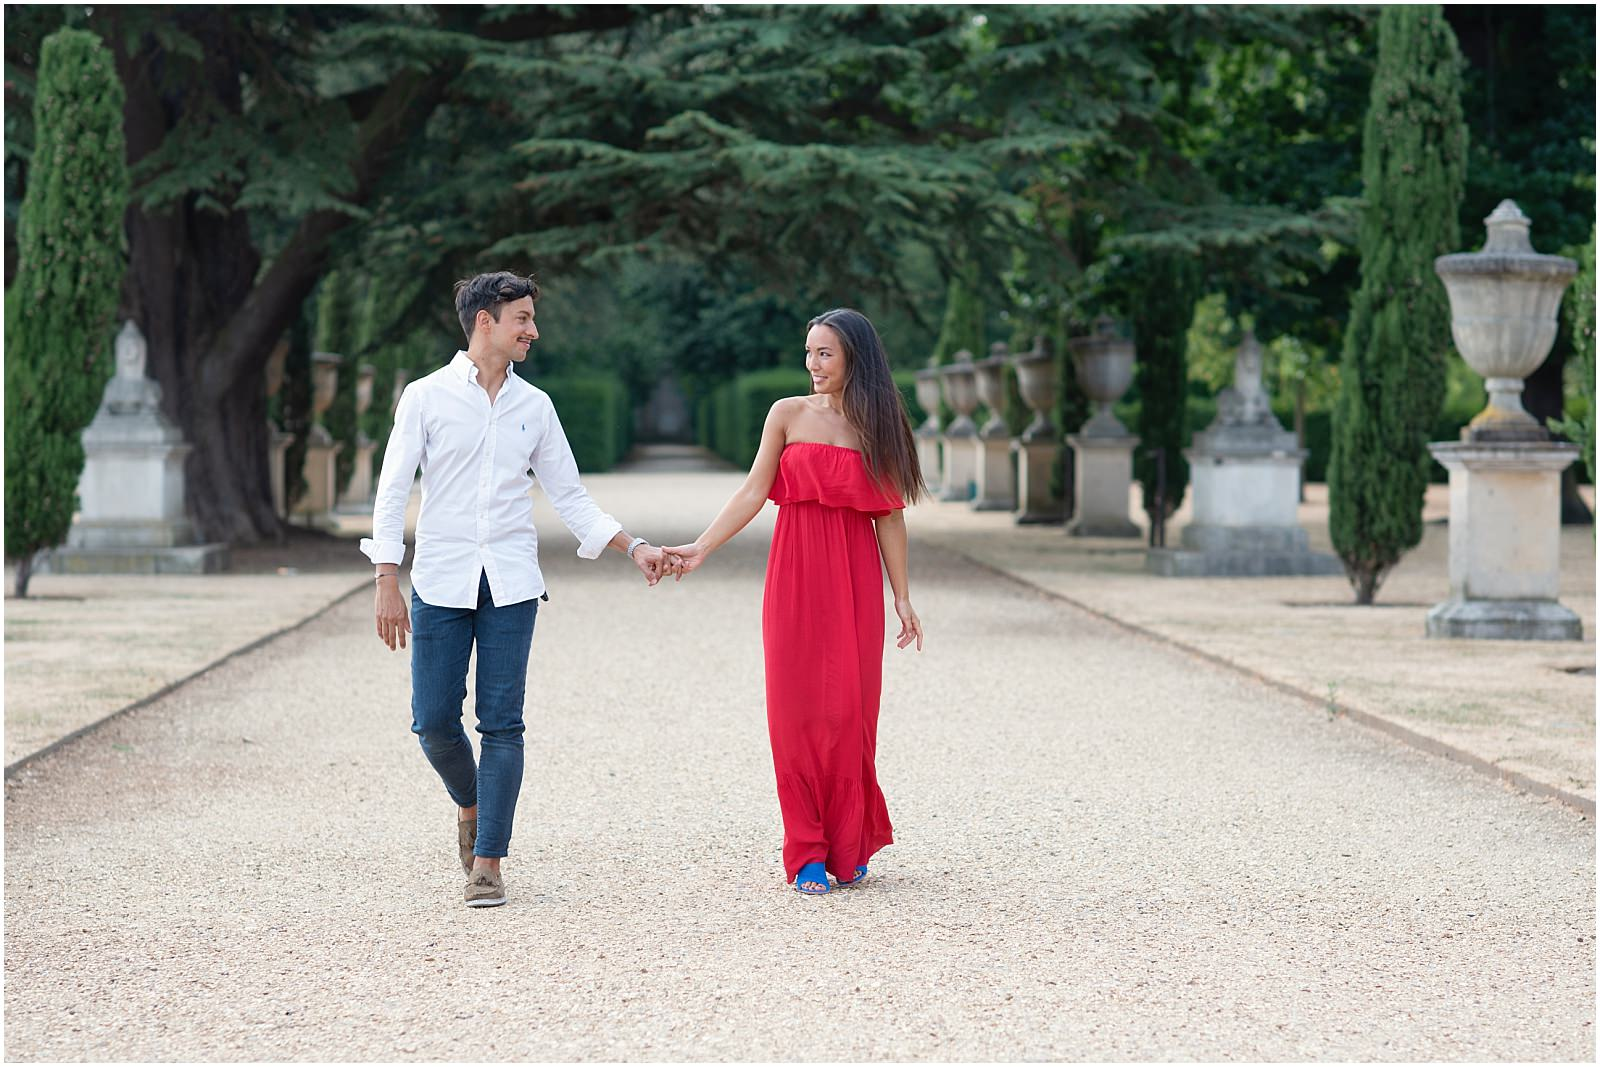 London Chiswick House and Gardens engagement